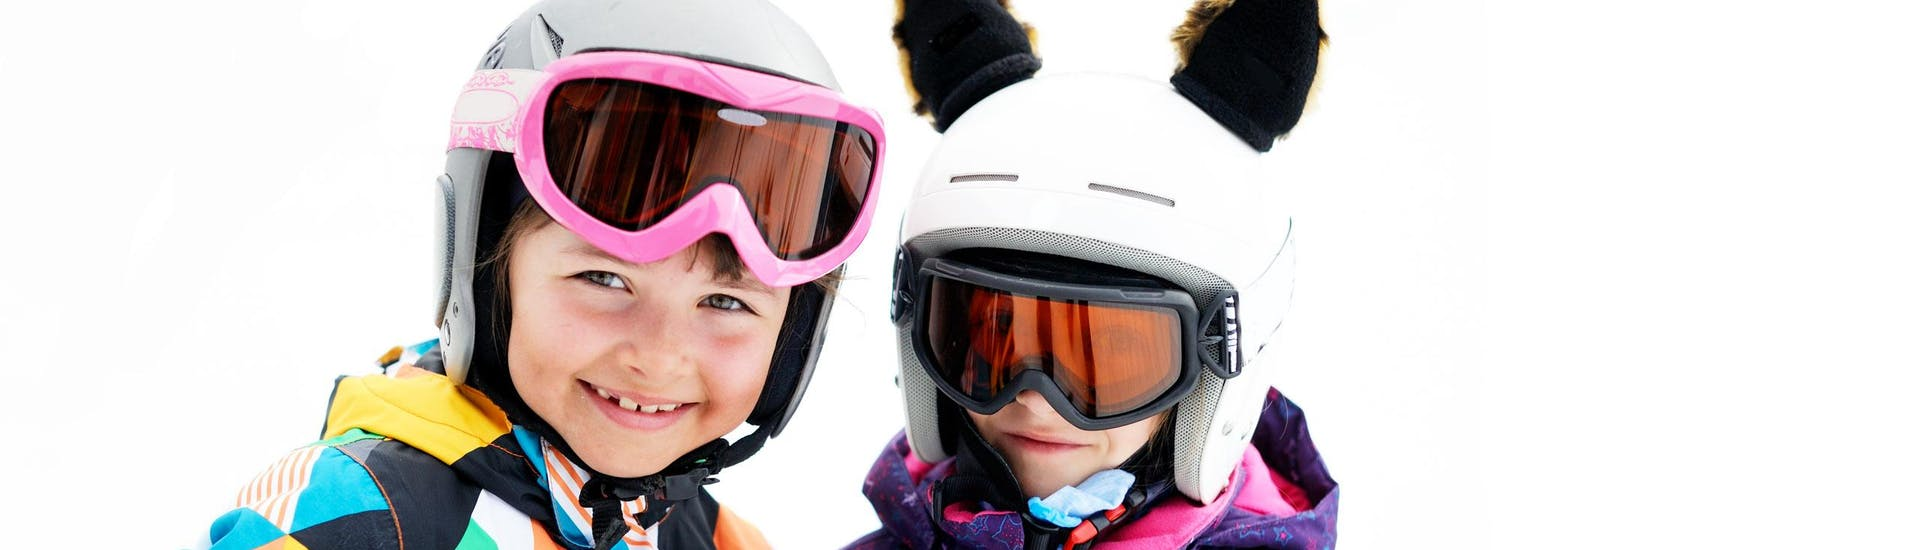 Two young children smiling at the camera during one of the Ski Instructor Private  - All Ages organised by Skischule Lienzer Dolomiten.